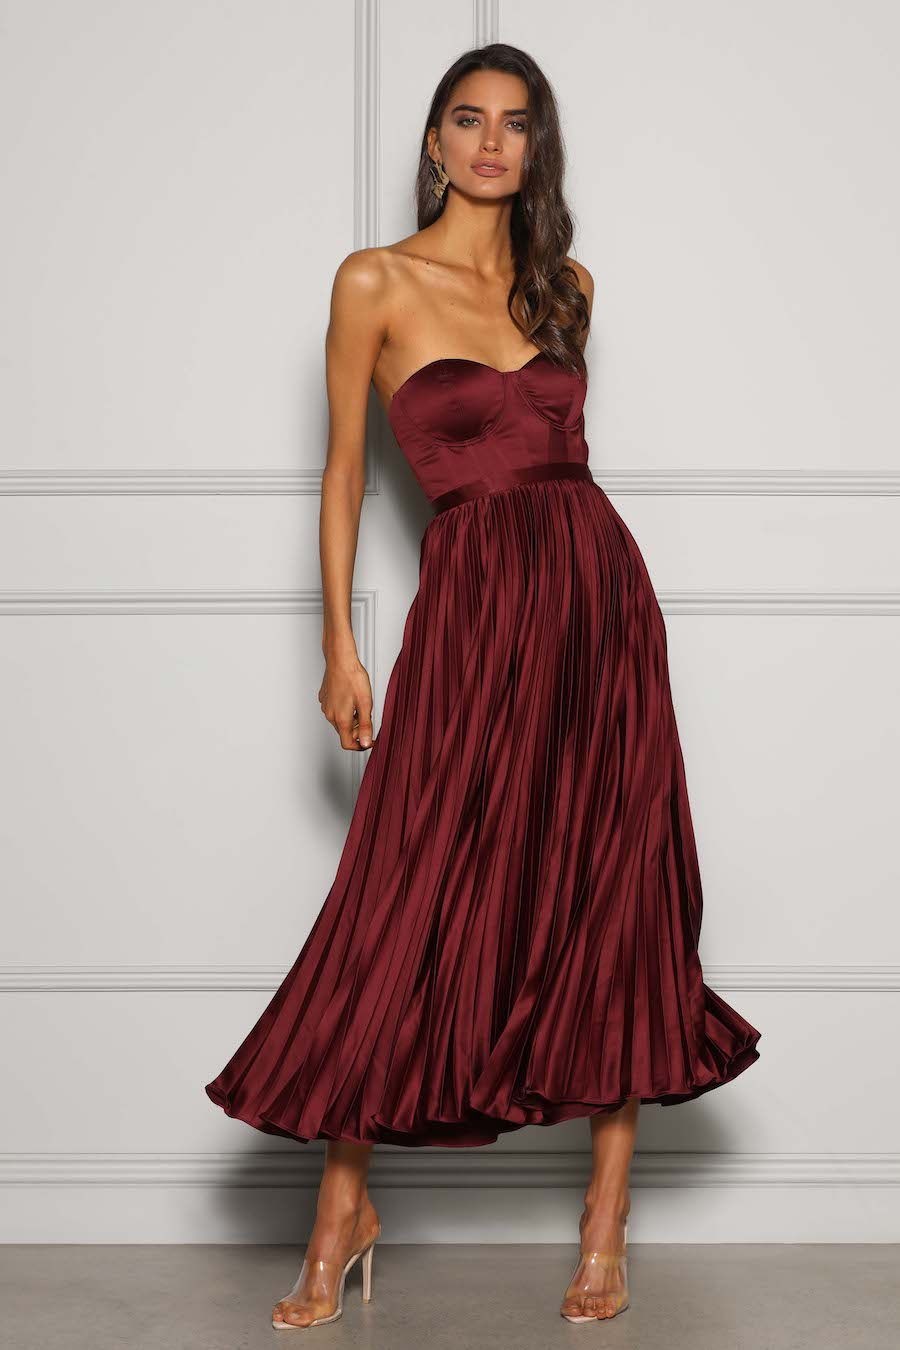 Strapless satin bodice with pleated skirt